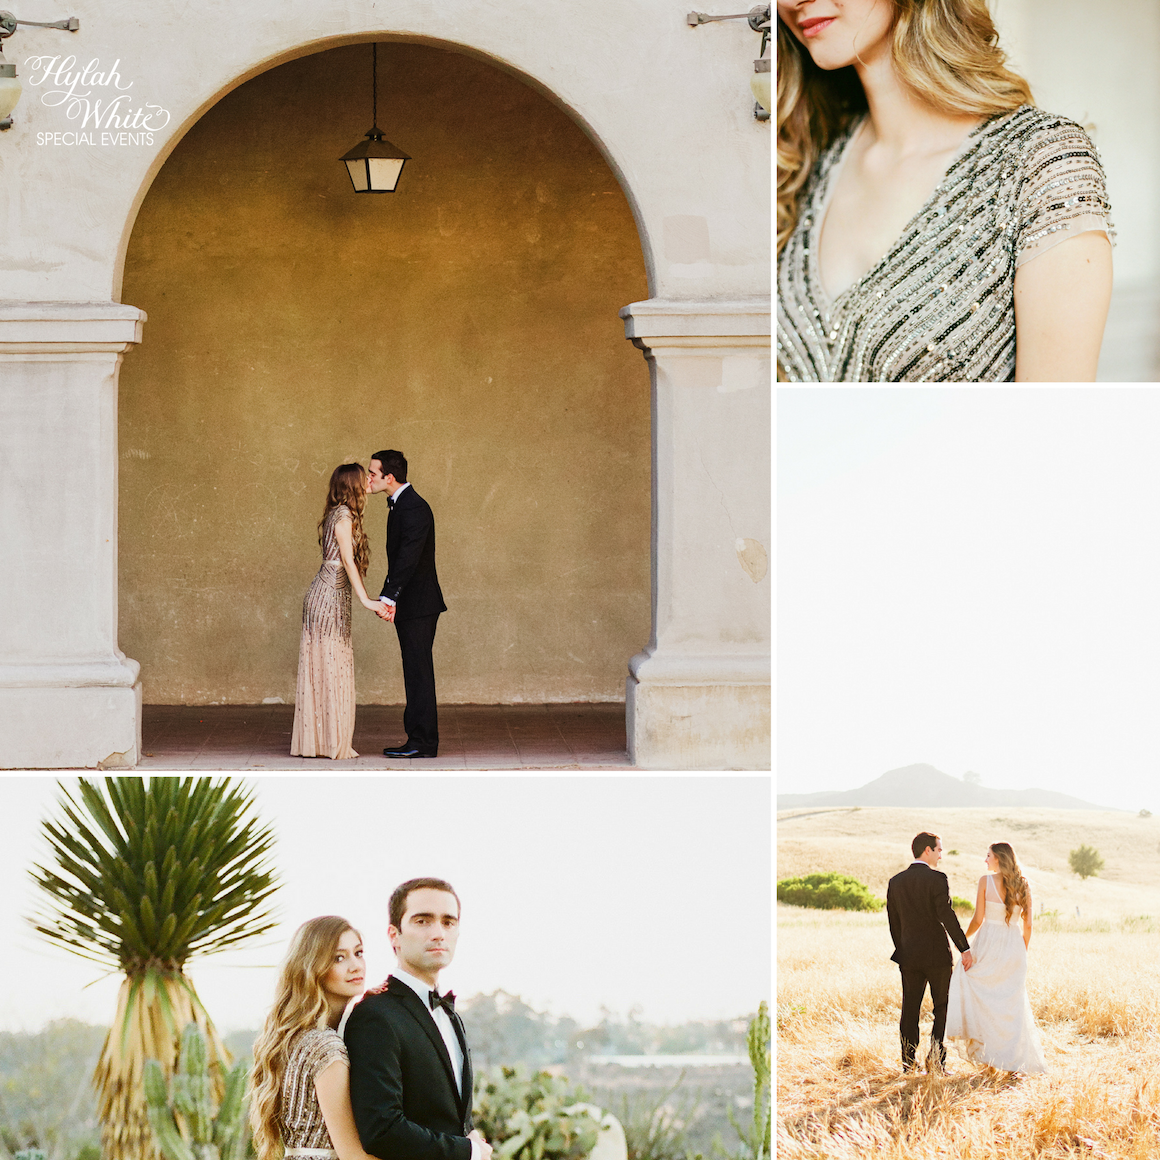 Engagement session at Balboa Park, Hylah White, Damaris Mia Photography, Adrianna Papell